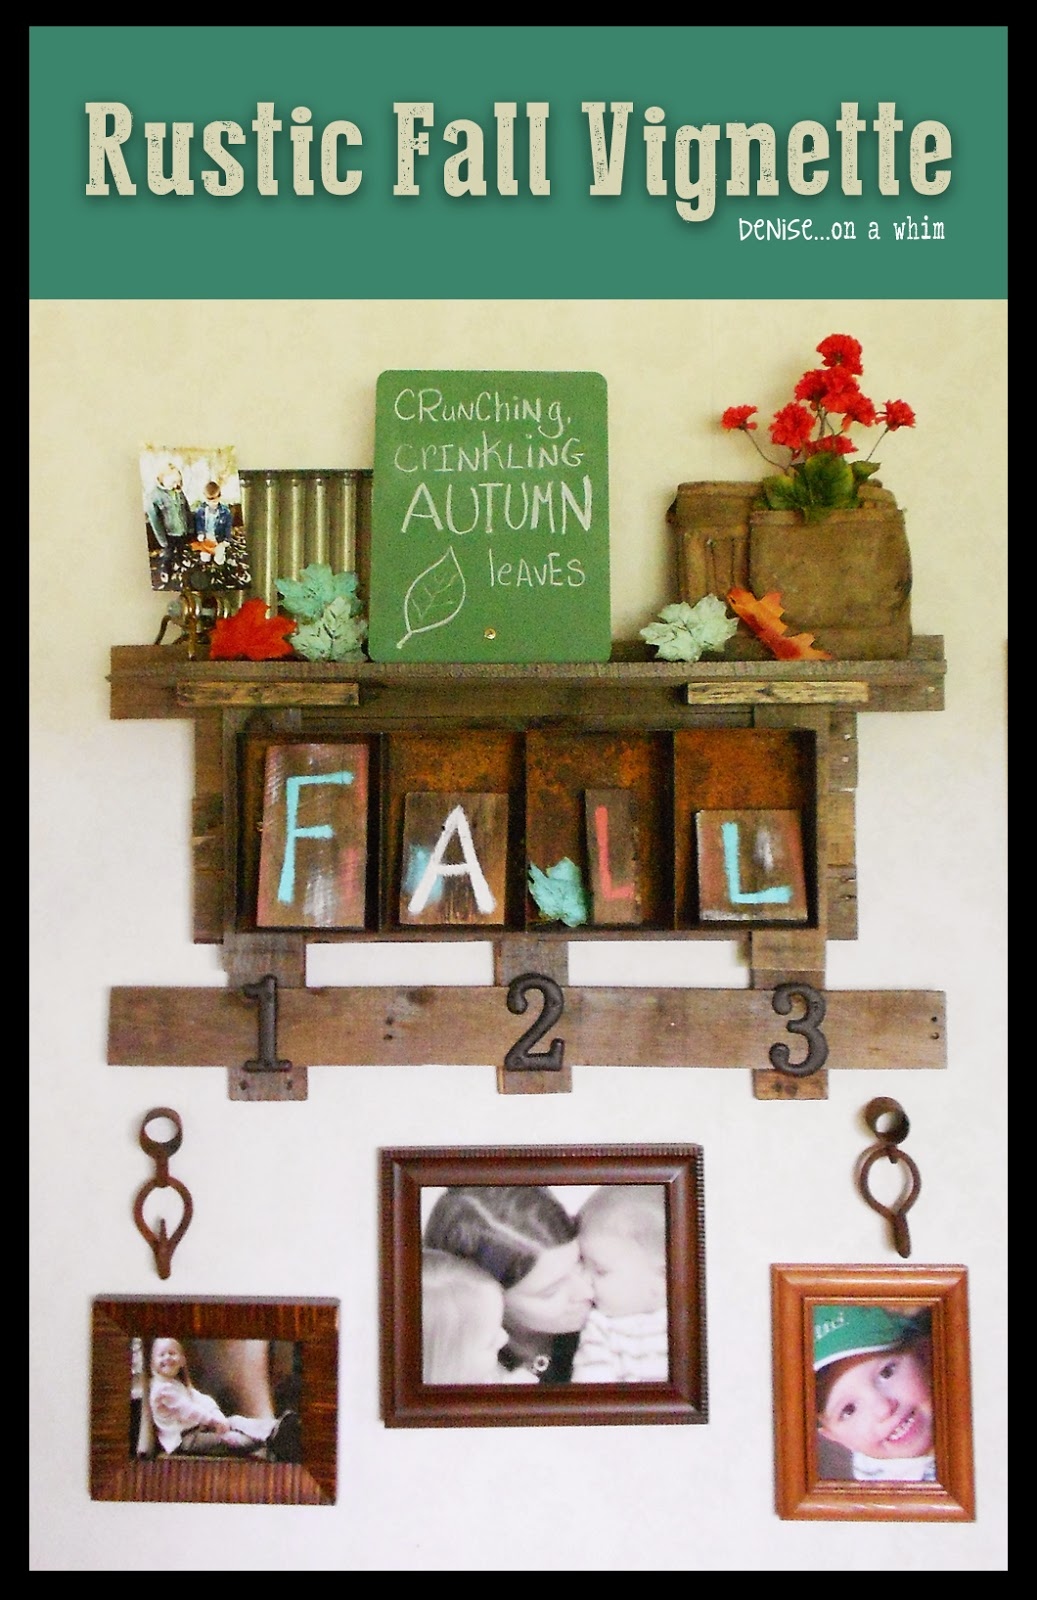 Rusty and Rustic Fall Vignette from Denise on a Whim